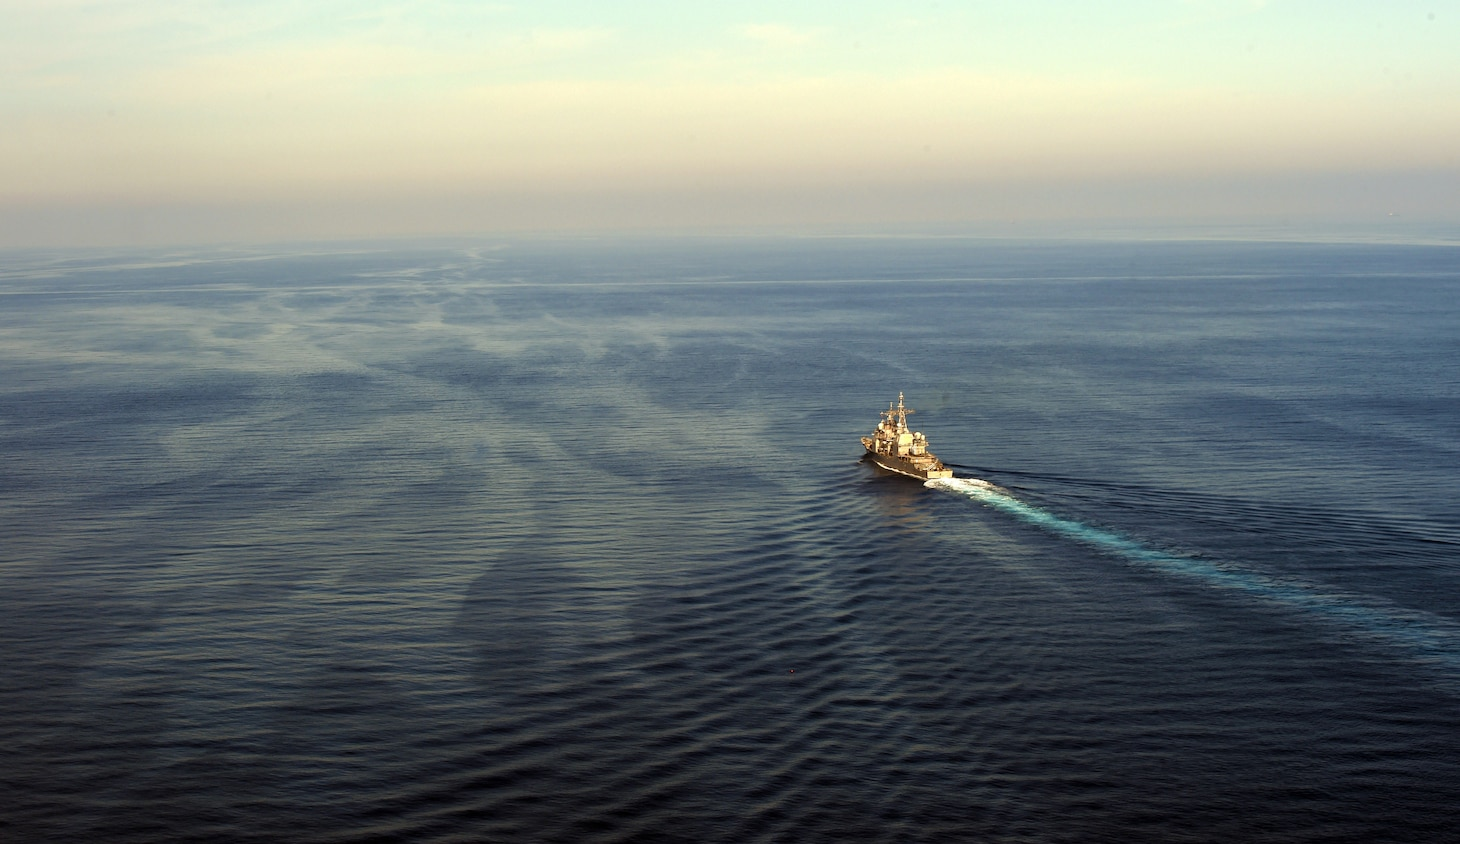 The Ticonderoga-class guided-missile cruiser USS Philippine Sea (CG 58) sails in the Mediterranean Sea after participating in a vertical replenishment-at-sea exercise with the Spanish frigate Álvaro de Bazán (F 101), Aug. 26, 2020. Philippine Sea is currently deployed to the U.S. 6th Fleet area of operations in support of regional allies and partners and U.S. national security interests in Europe and Africa.